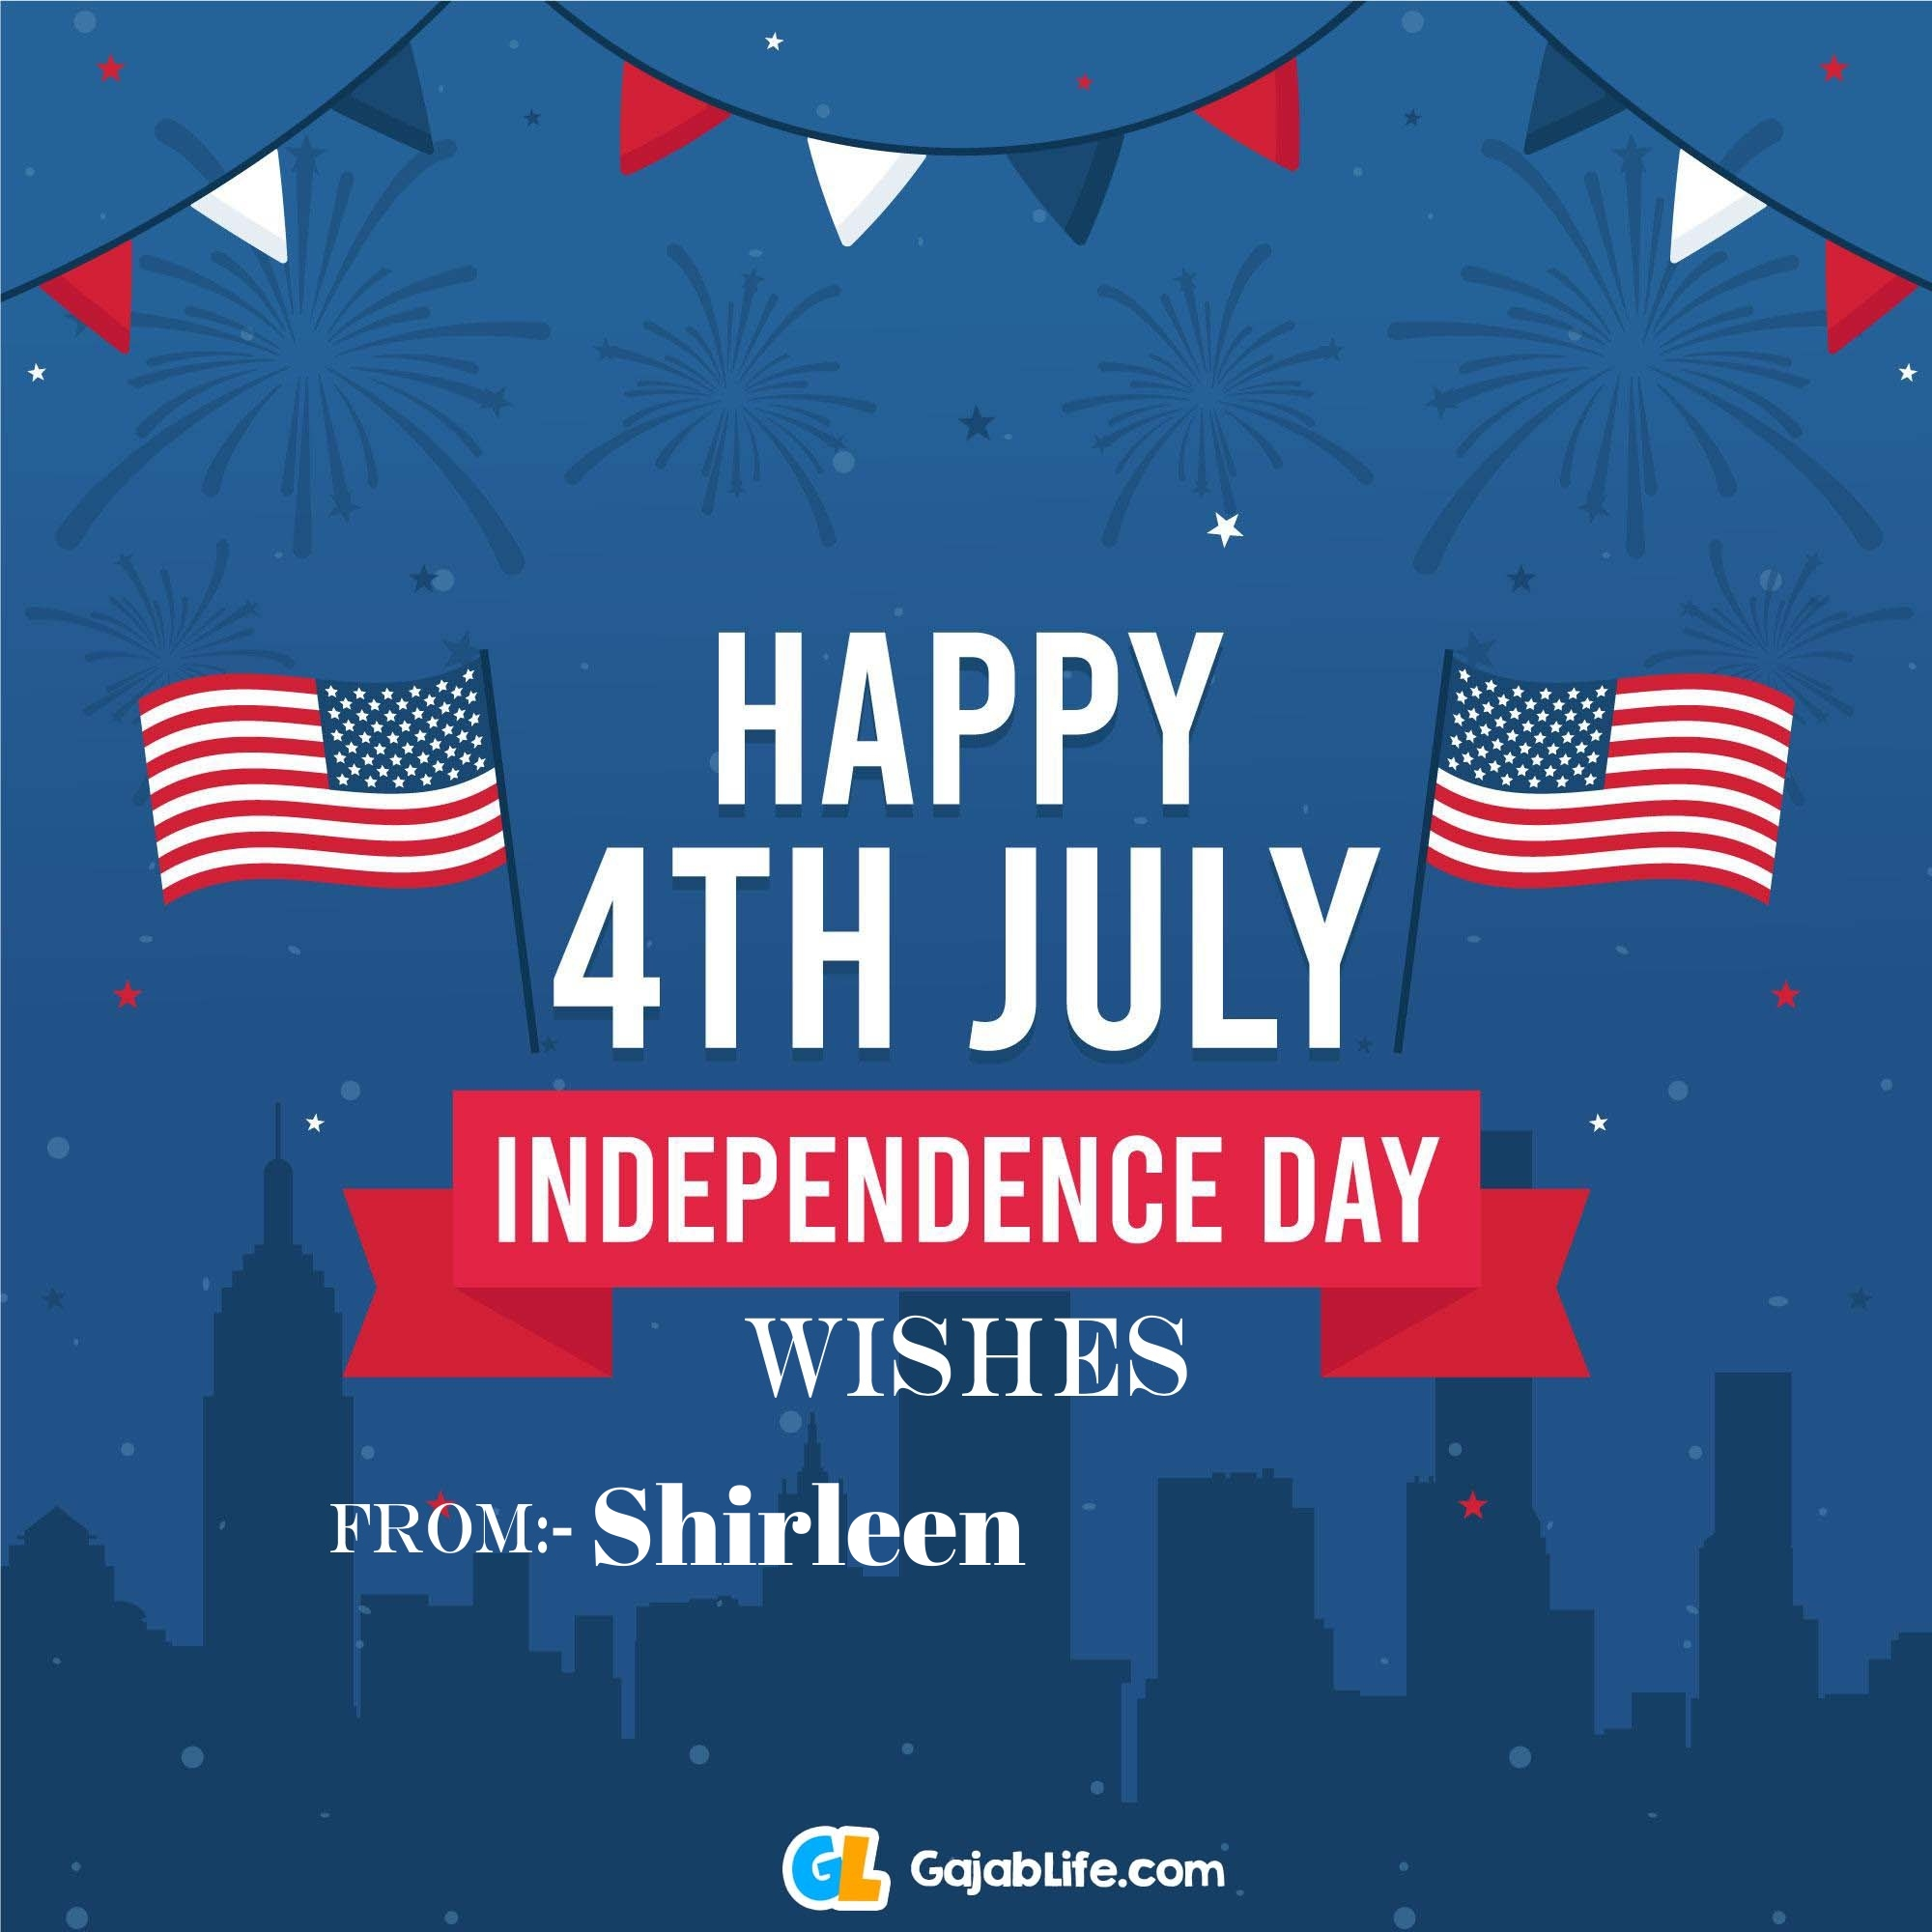 Shirleen happy independence day united states of america images